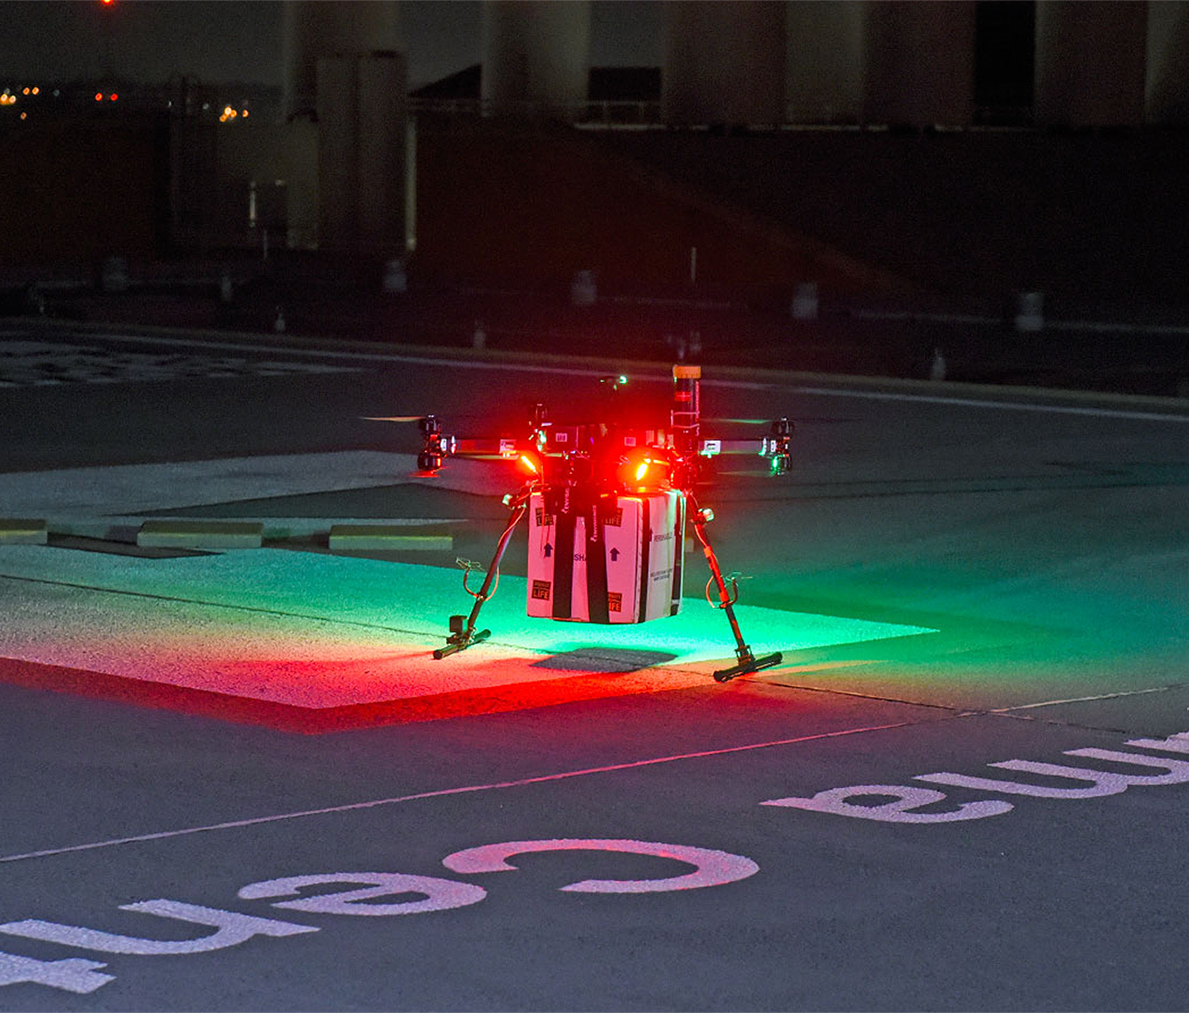 This special UMD-created drone that successfully delivered a kidney for transplant is an example of